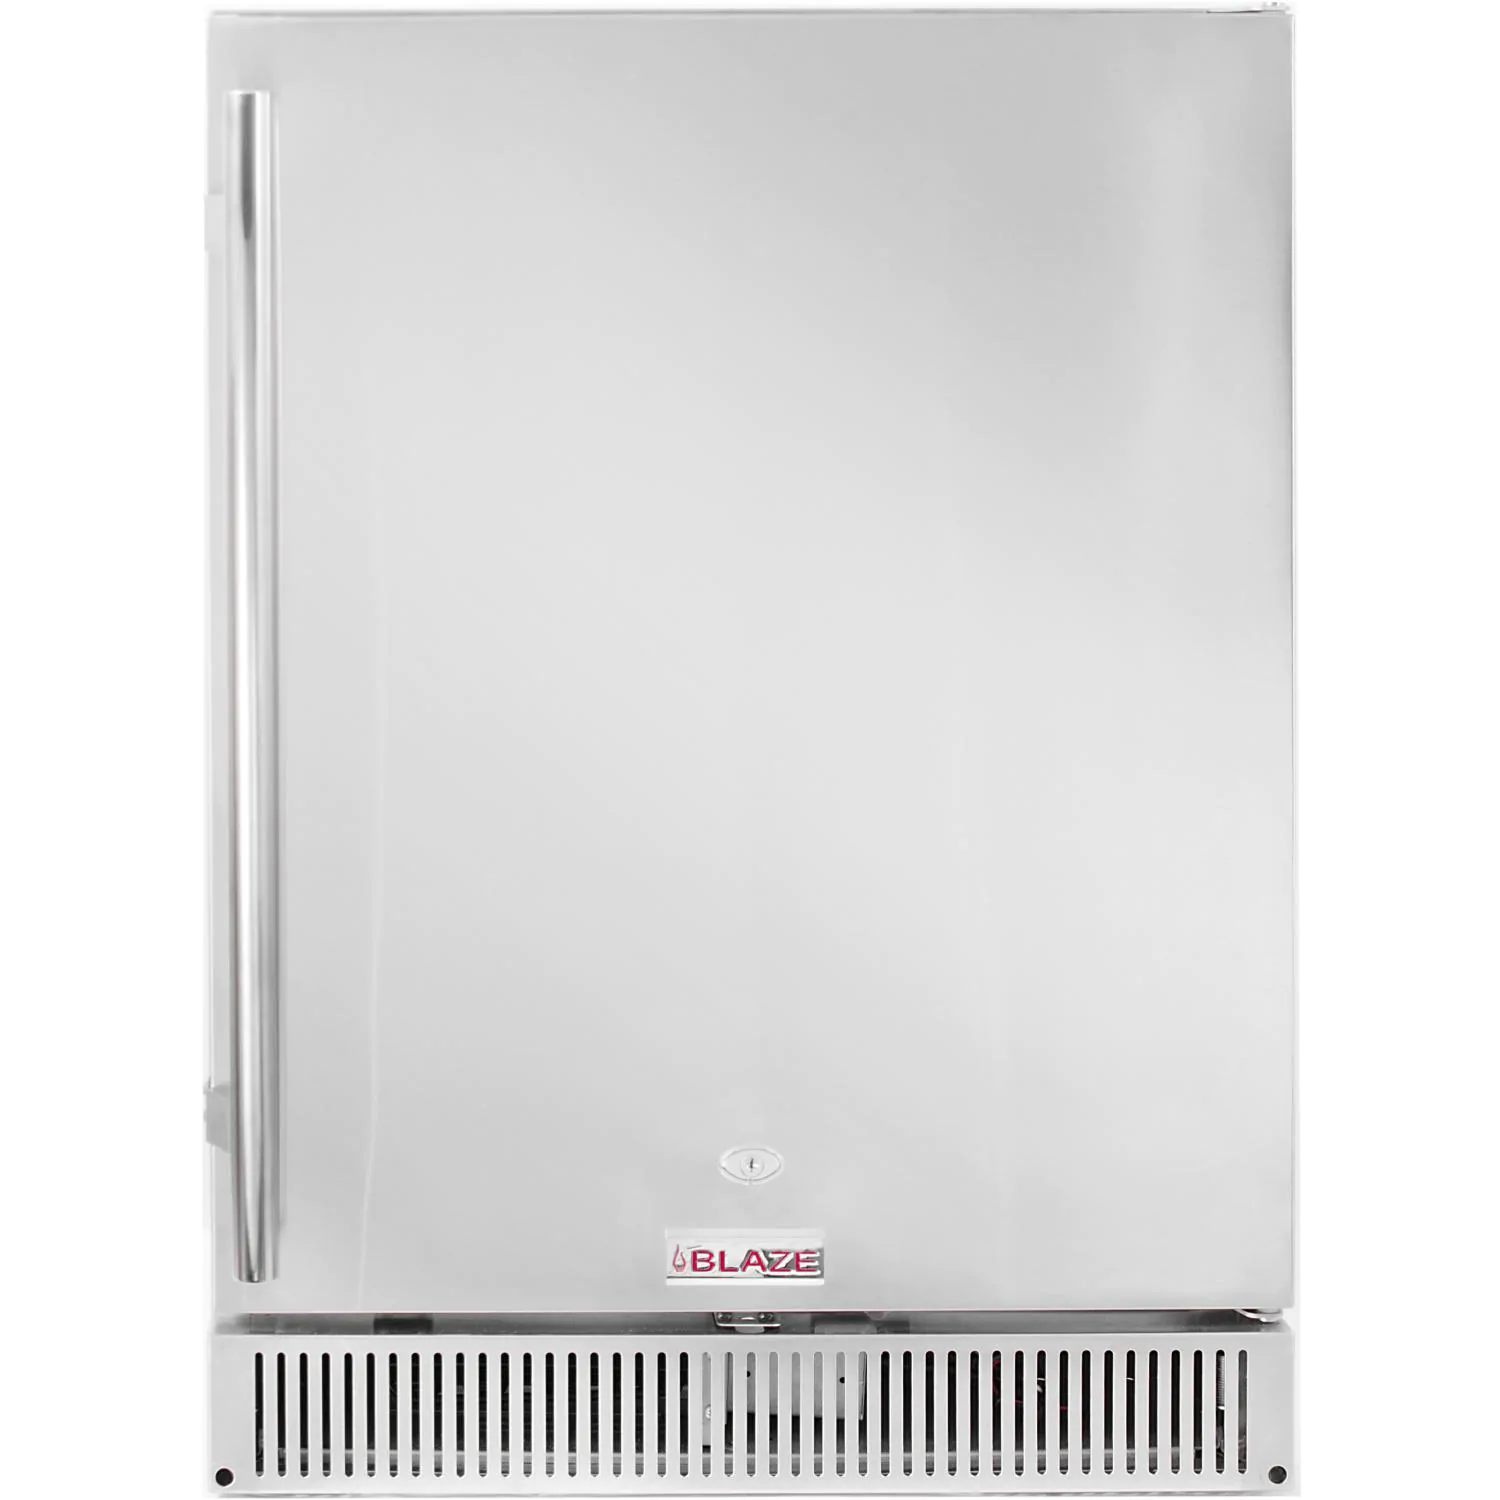 Blaze 24-Inch 5.2 Cu. Ft. Outdoor Rated Compact Refrigerator - BLZ-SSRF-50DH